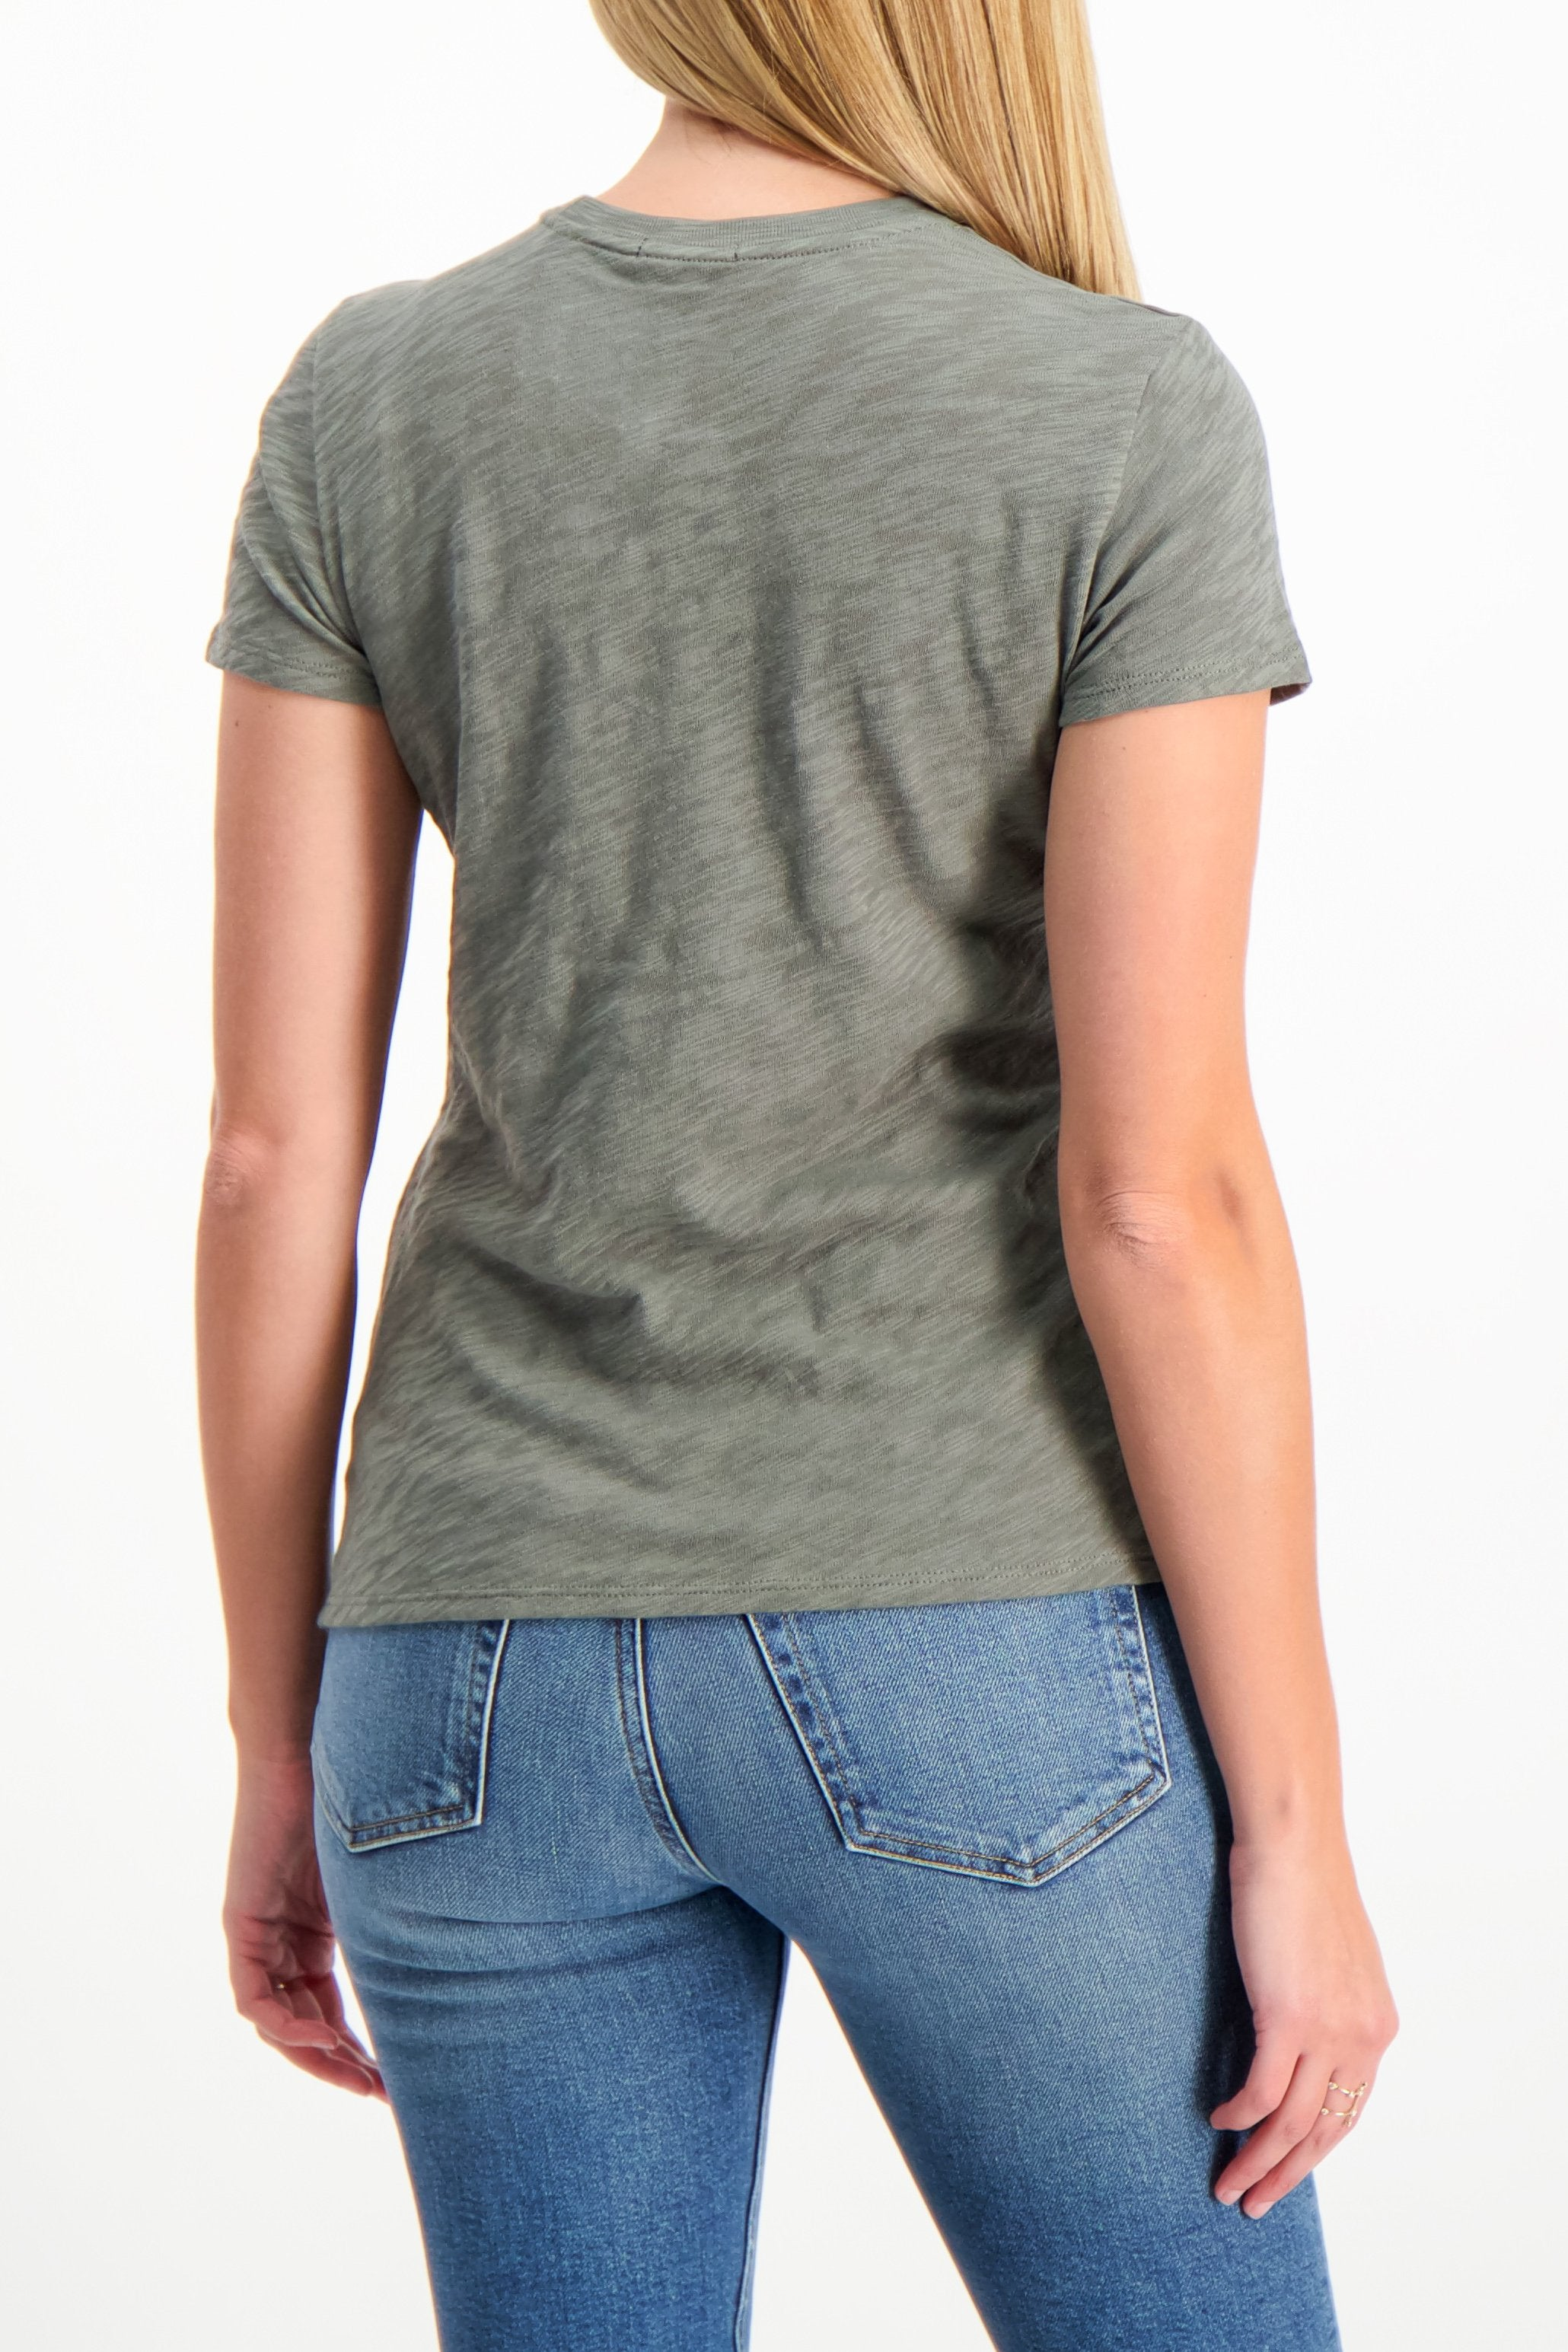 Back Crop Image Of Model Wearing ATM Schoolboy Shirt Olive